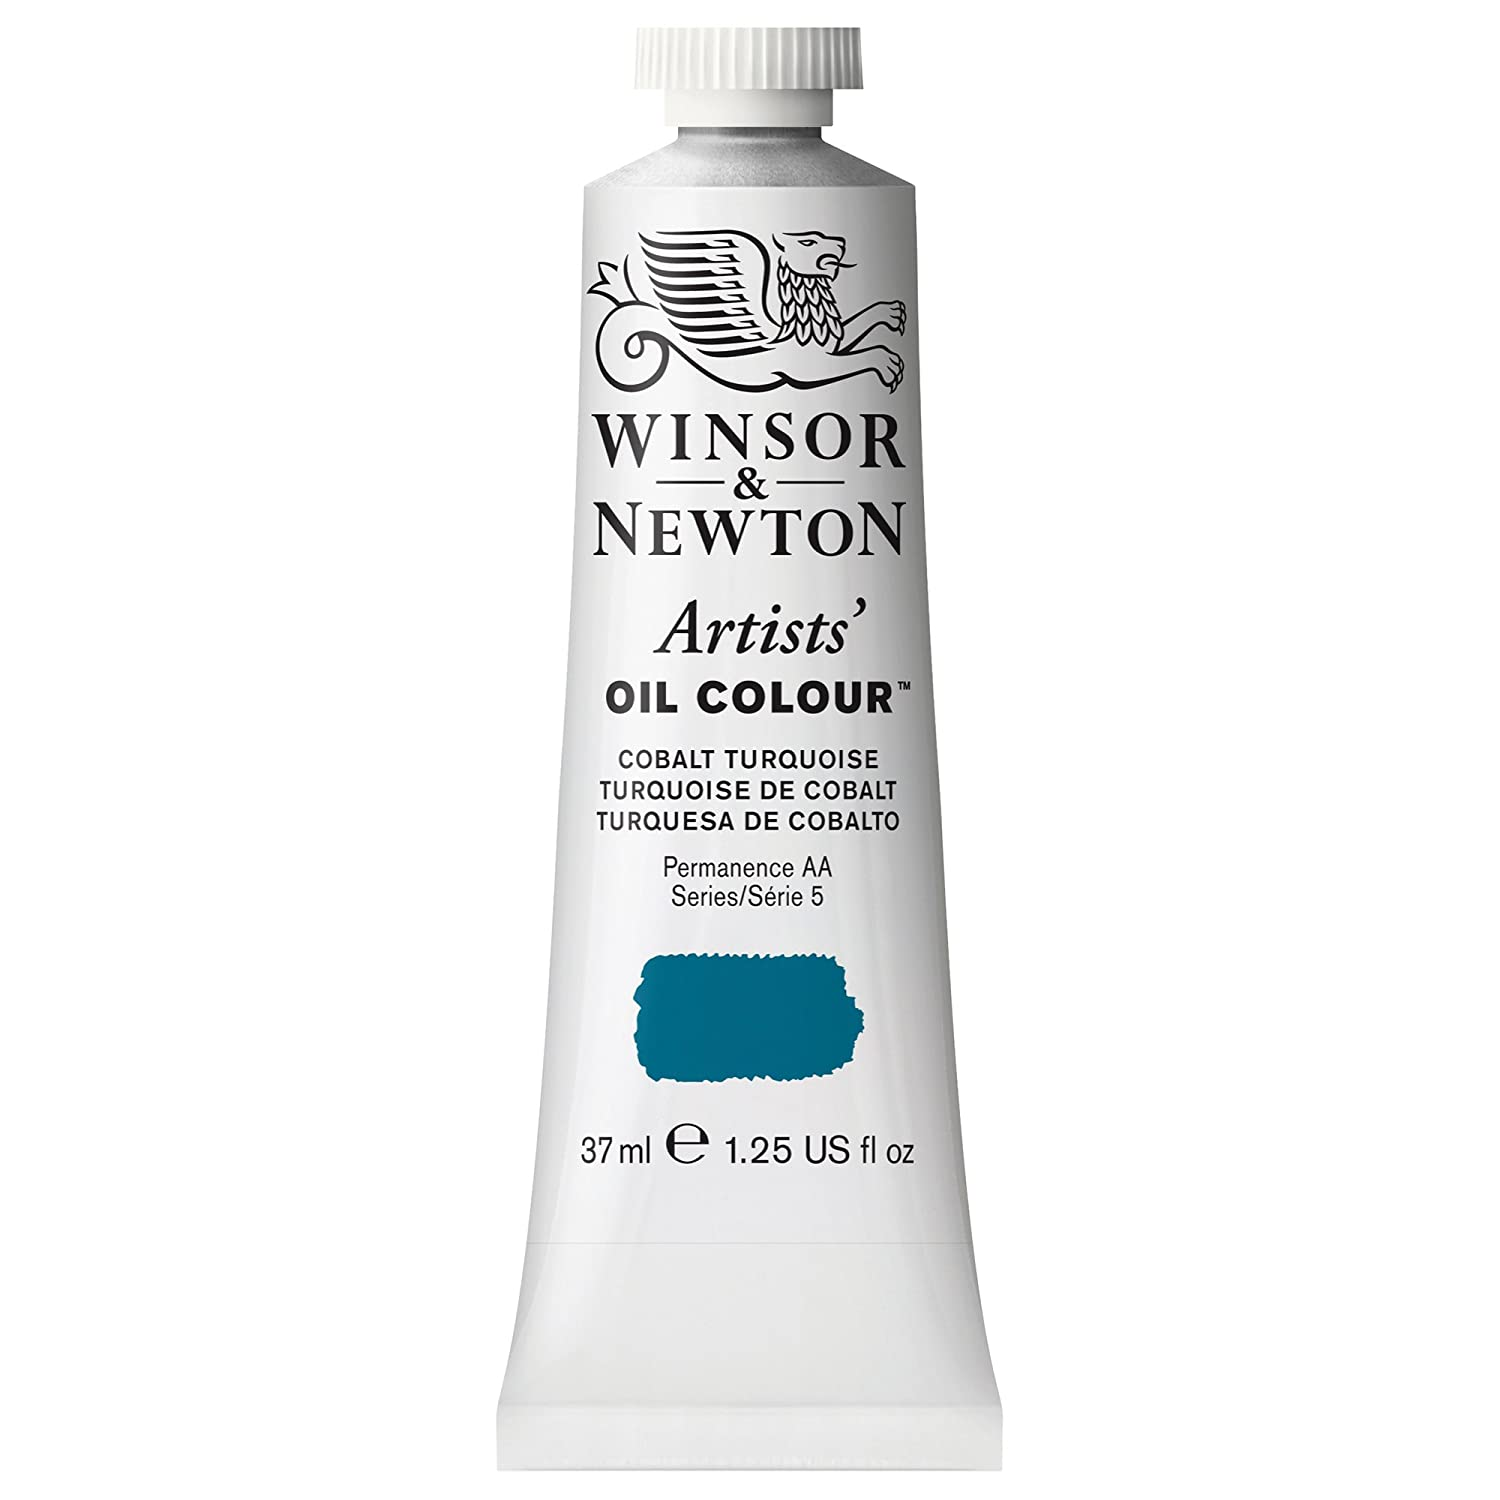 Winsor & Newton 1214730 37ml Artists Oil Color - Winsor Yellow B0006ORDDC Winsor Yellow|37ml チューブ Winsor Yellow